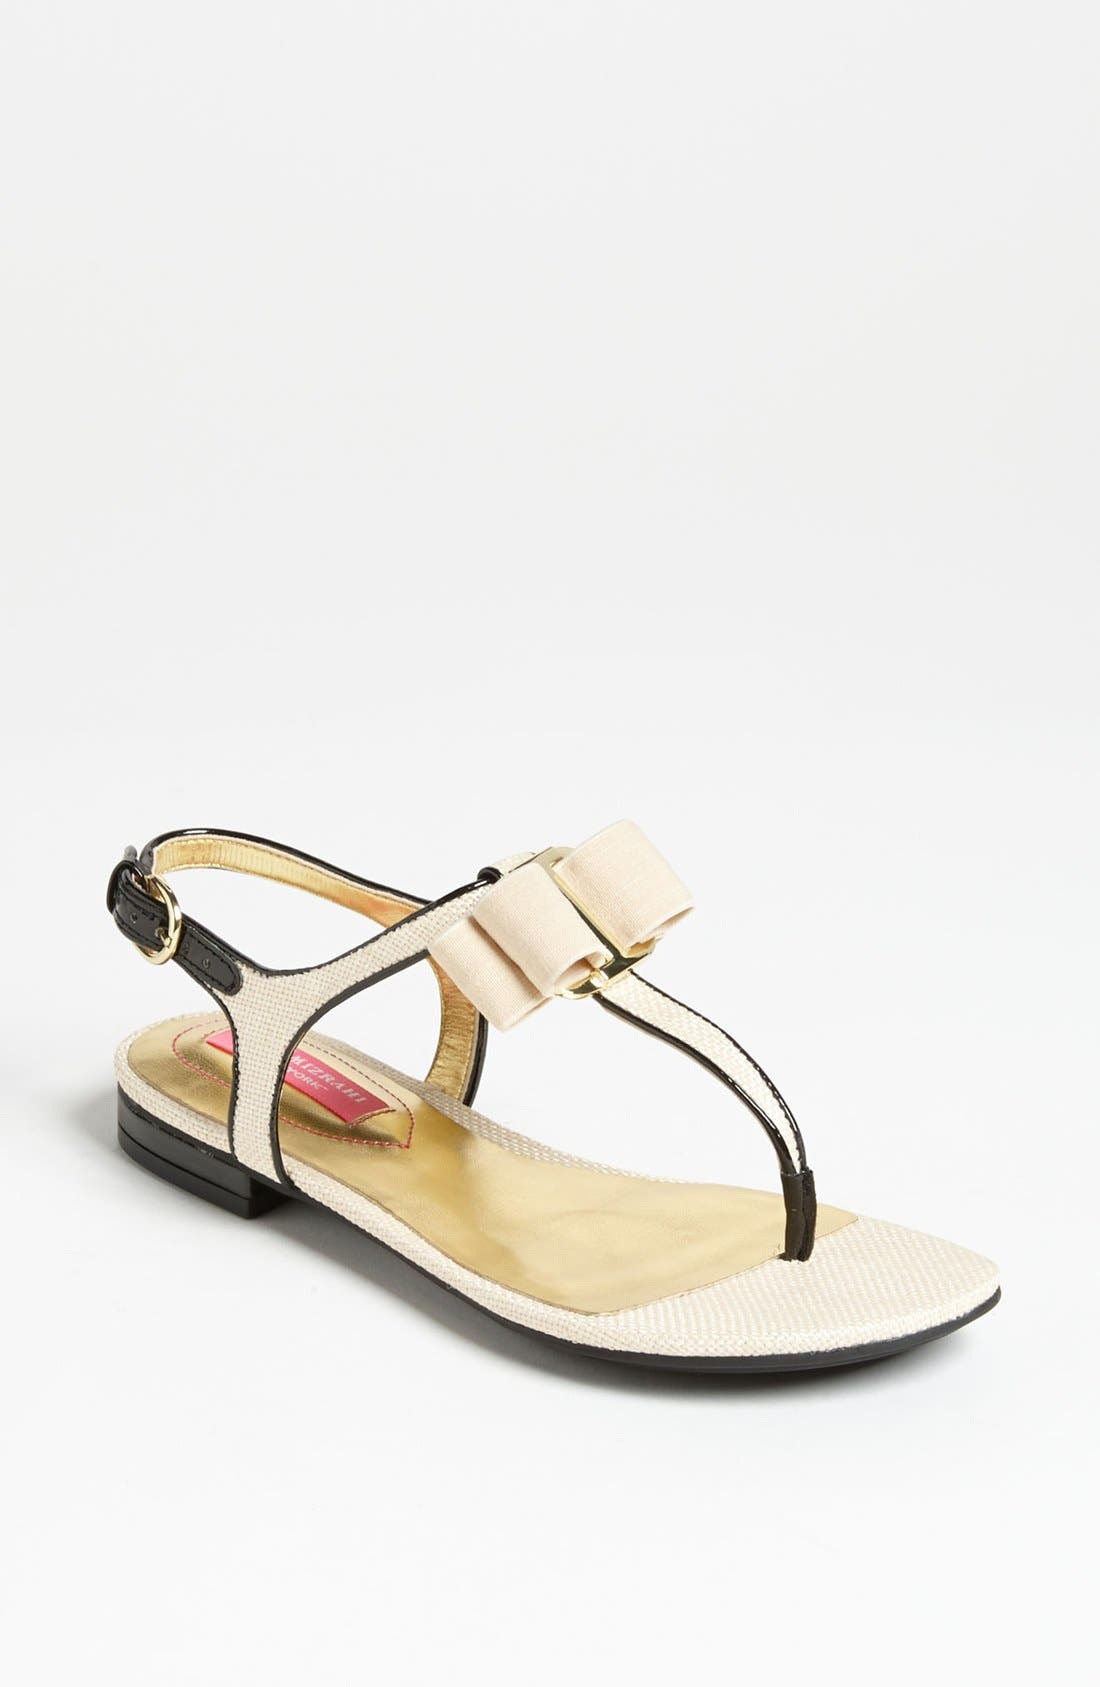 Alternate Image 1 Selected - ISAAC MIZRAHI BREE SANDAL